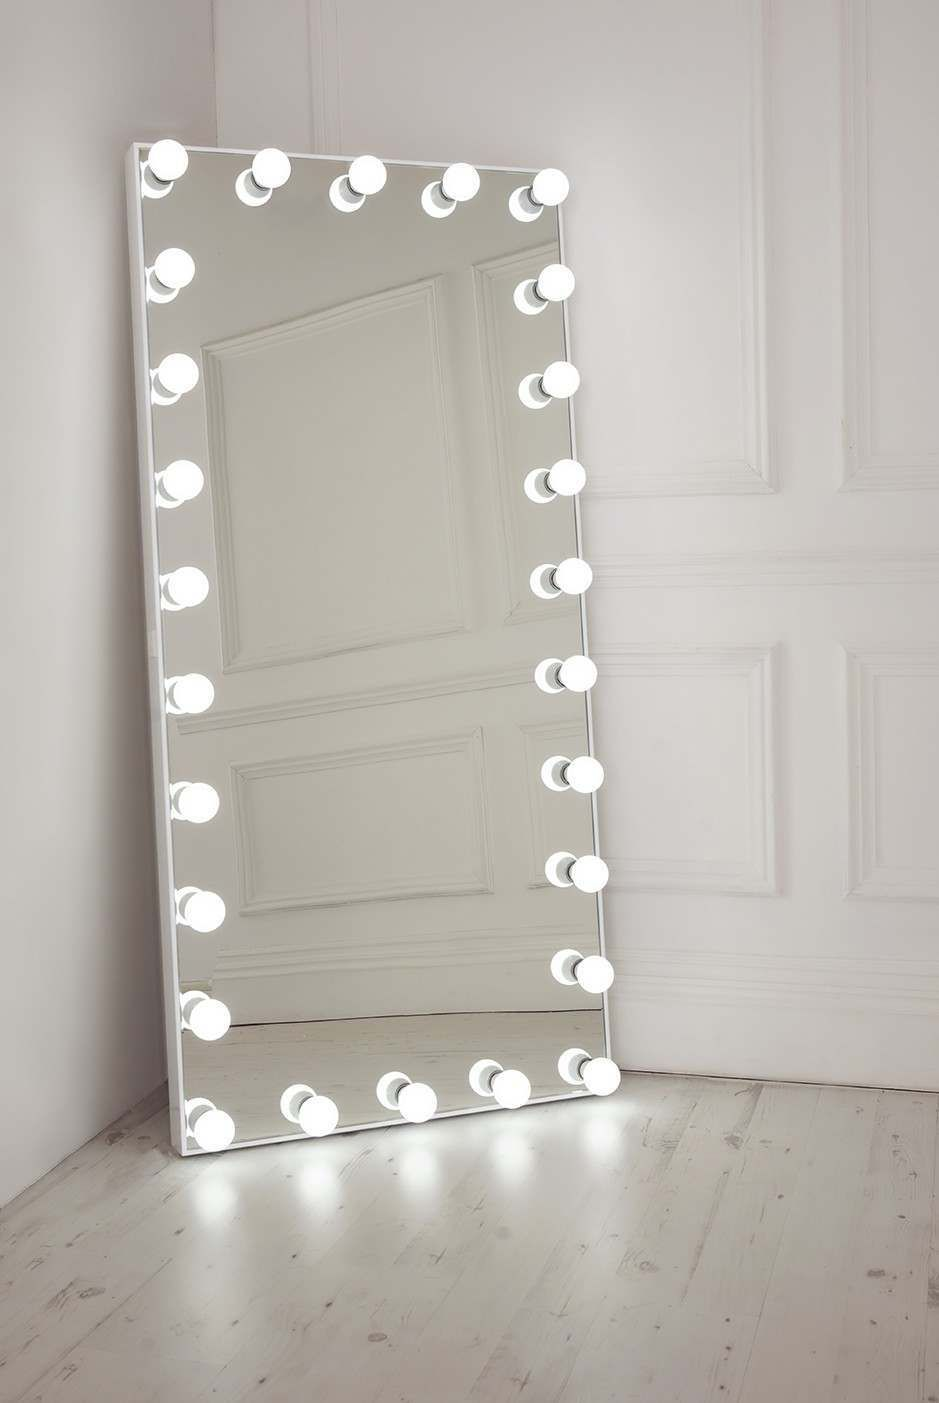 full length mirror with lights - Floor Length Mirror With Lights Walesfootprintorg full length mirror with lights